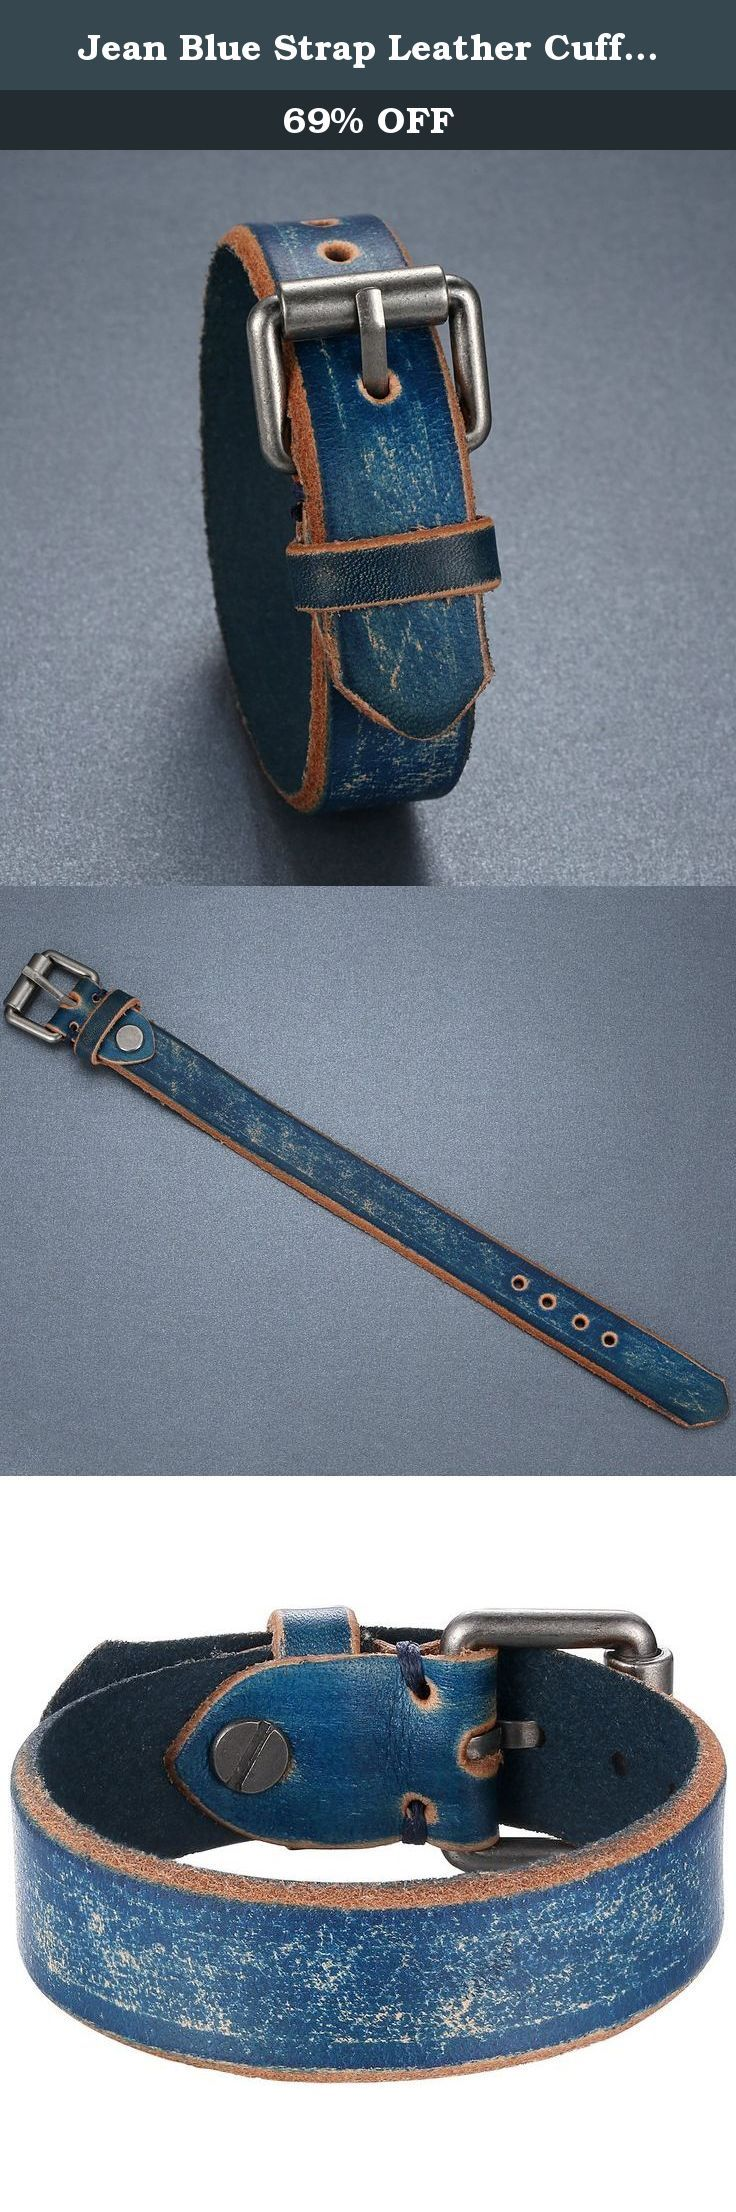 Jean Blue Strap Leather Cuff Bracelet, Ajustable, Belt Style, Unisex, llb020la. Each leather bracelet will be unique in color. Individual characteristics of leather are exclusive to every single hide. The hideÕs final color may vary in color, tone and darkness. Over time the leather will appear rustic as the hide embraces a patina that is unique to the wearer. Daily activities including sun exposure, handling, water will aid this natural process.